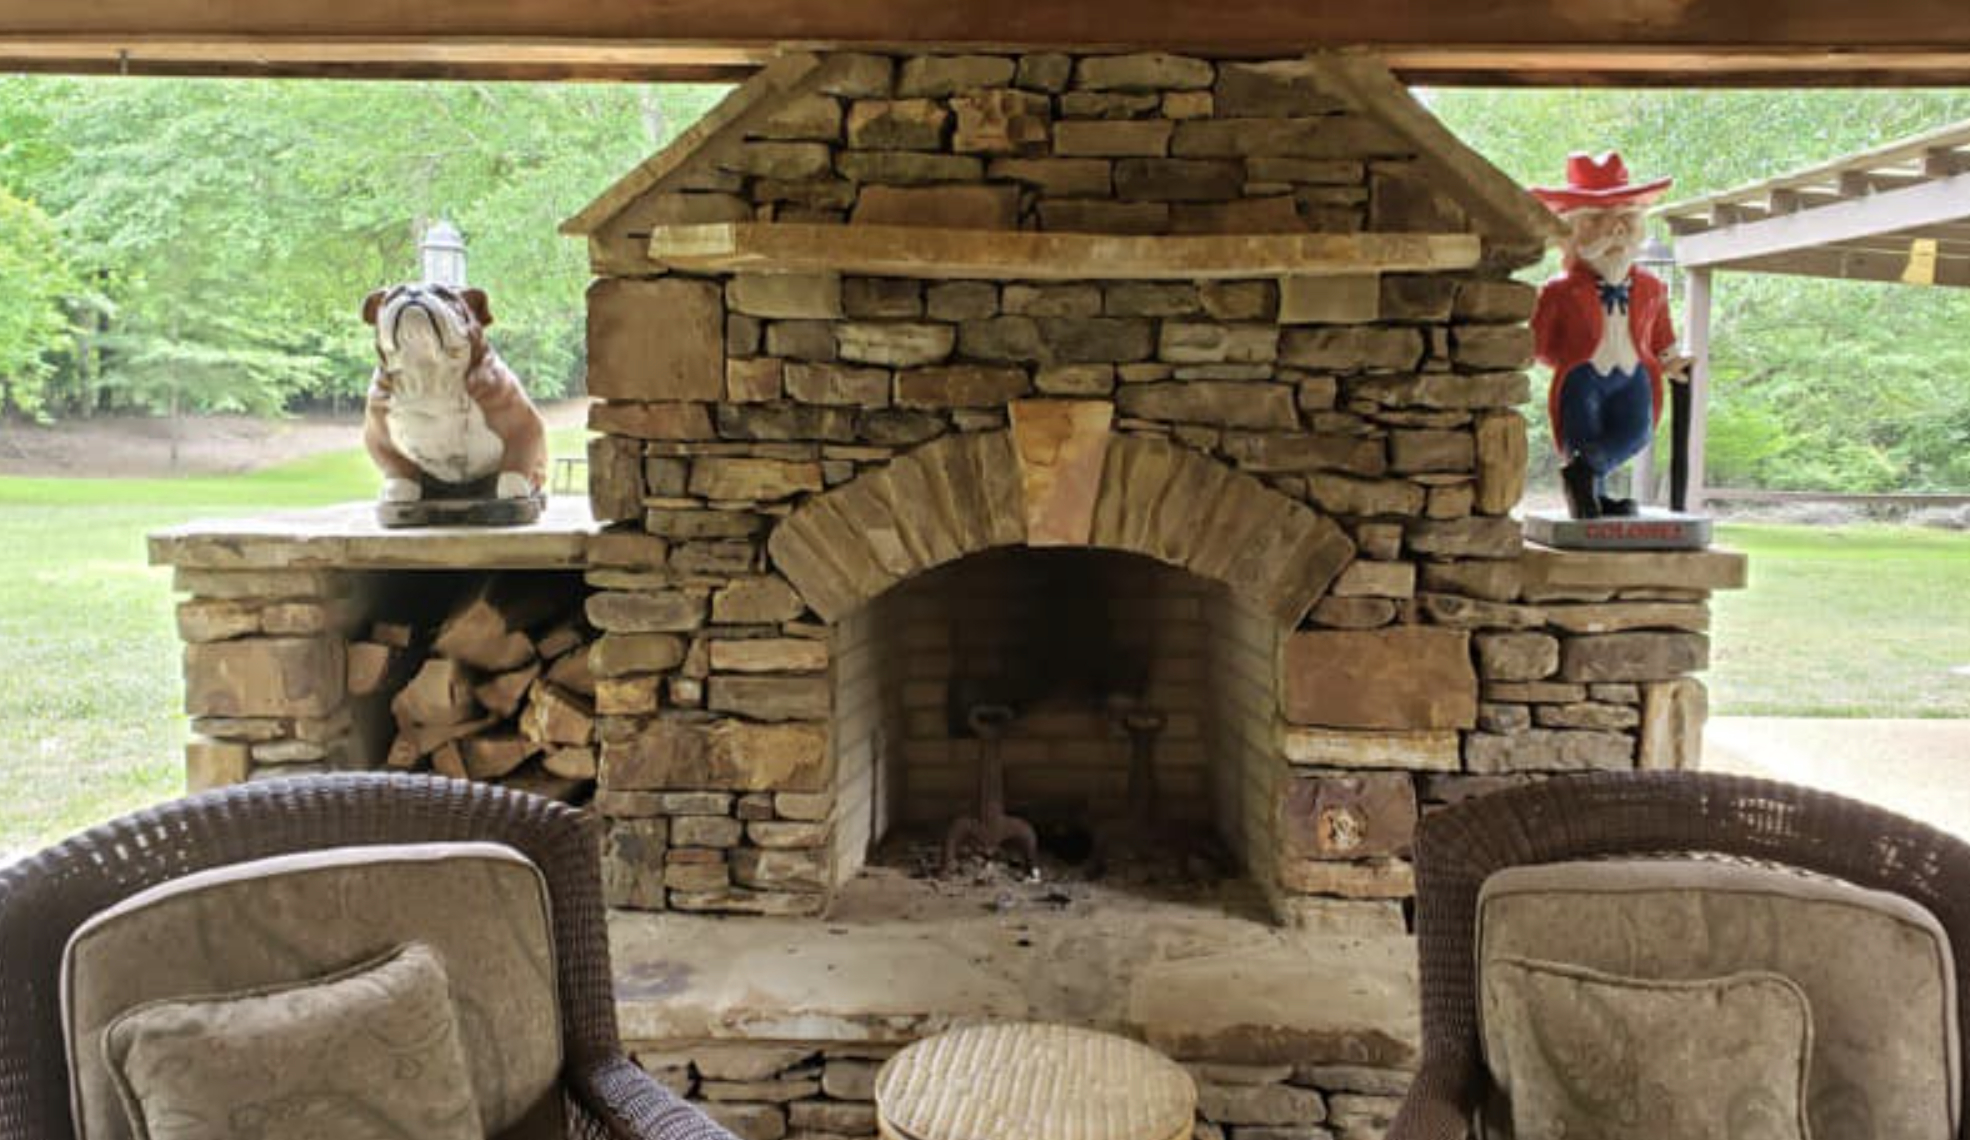 this image shows fireplace in Aliso Viejo, California